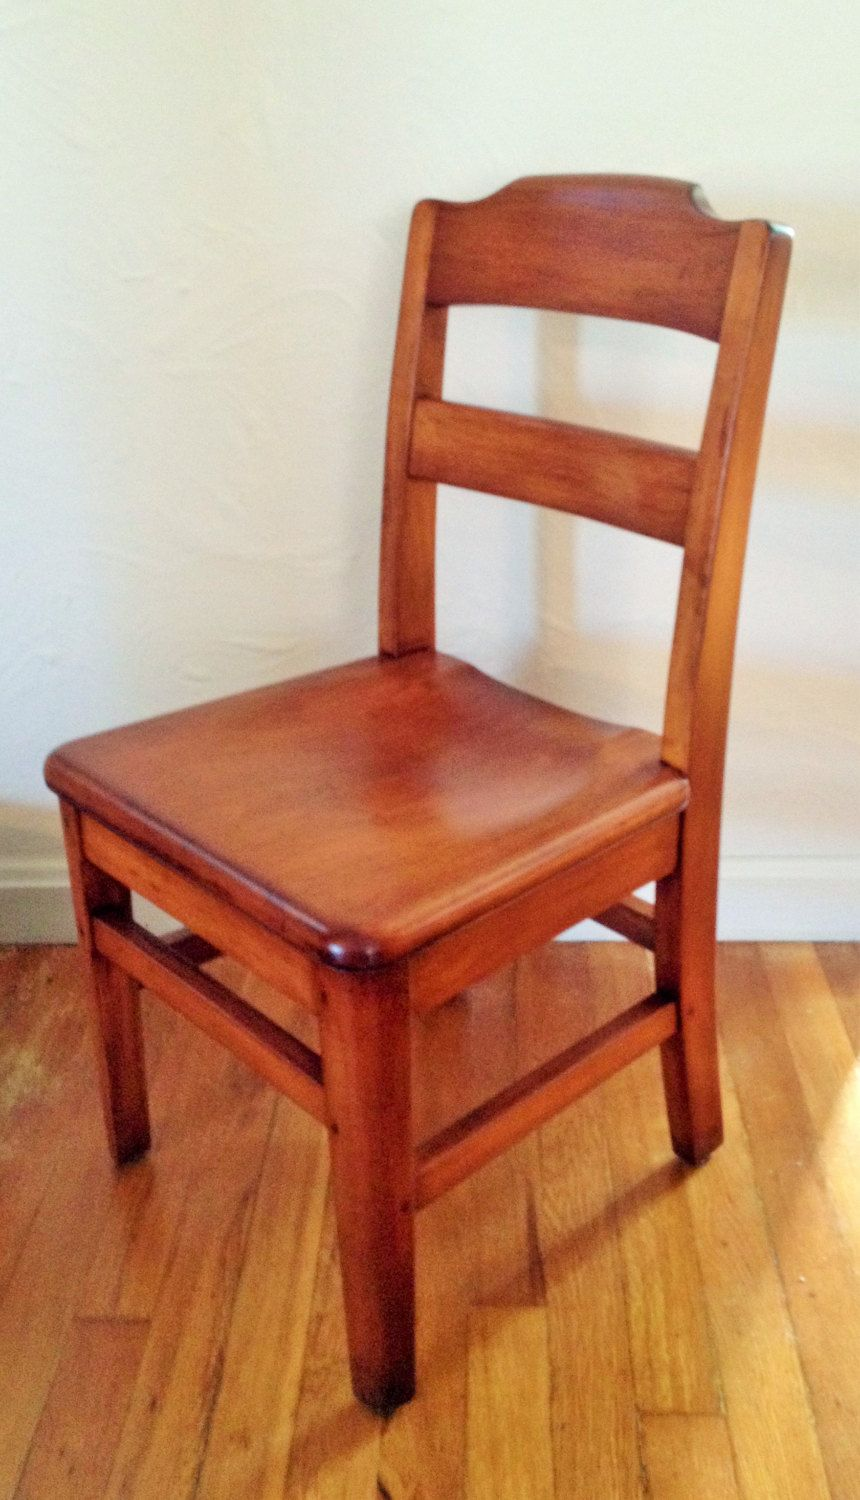 Wh Gunlocke Chair Pride Electric Lift Repair Vintage W H Company Children S School Desk By Shoptulavintage On Etsy